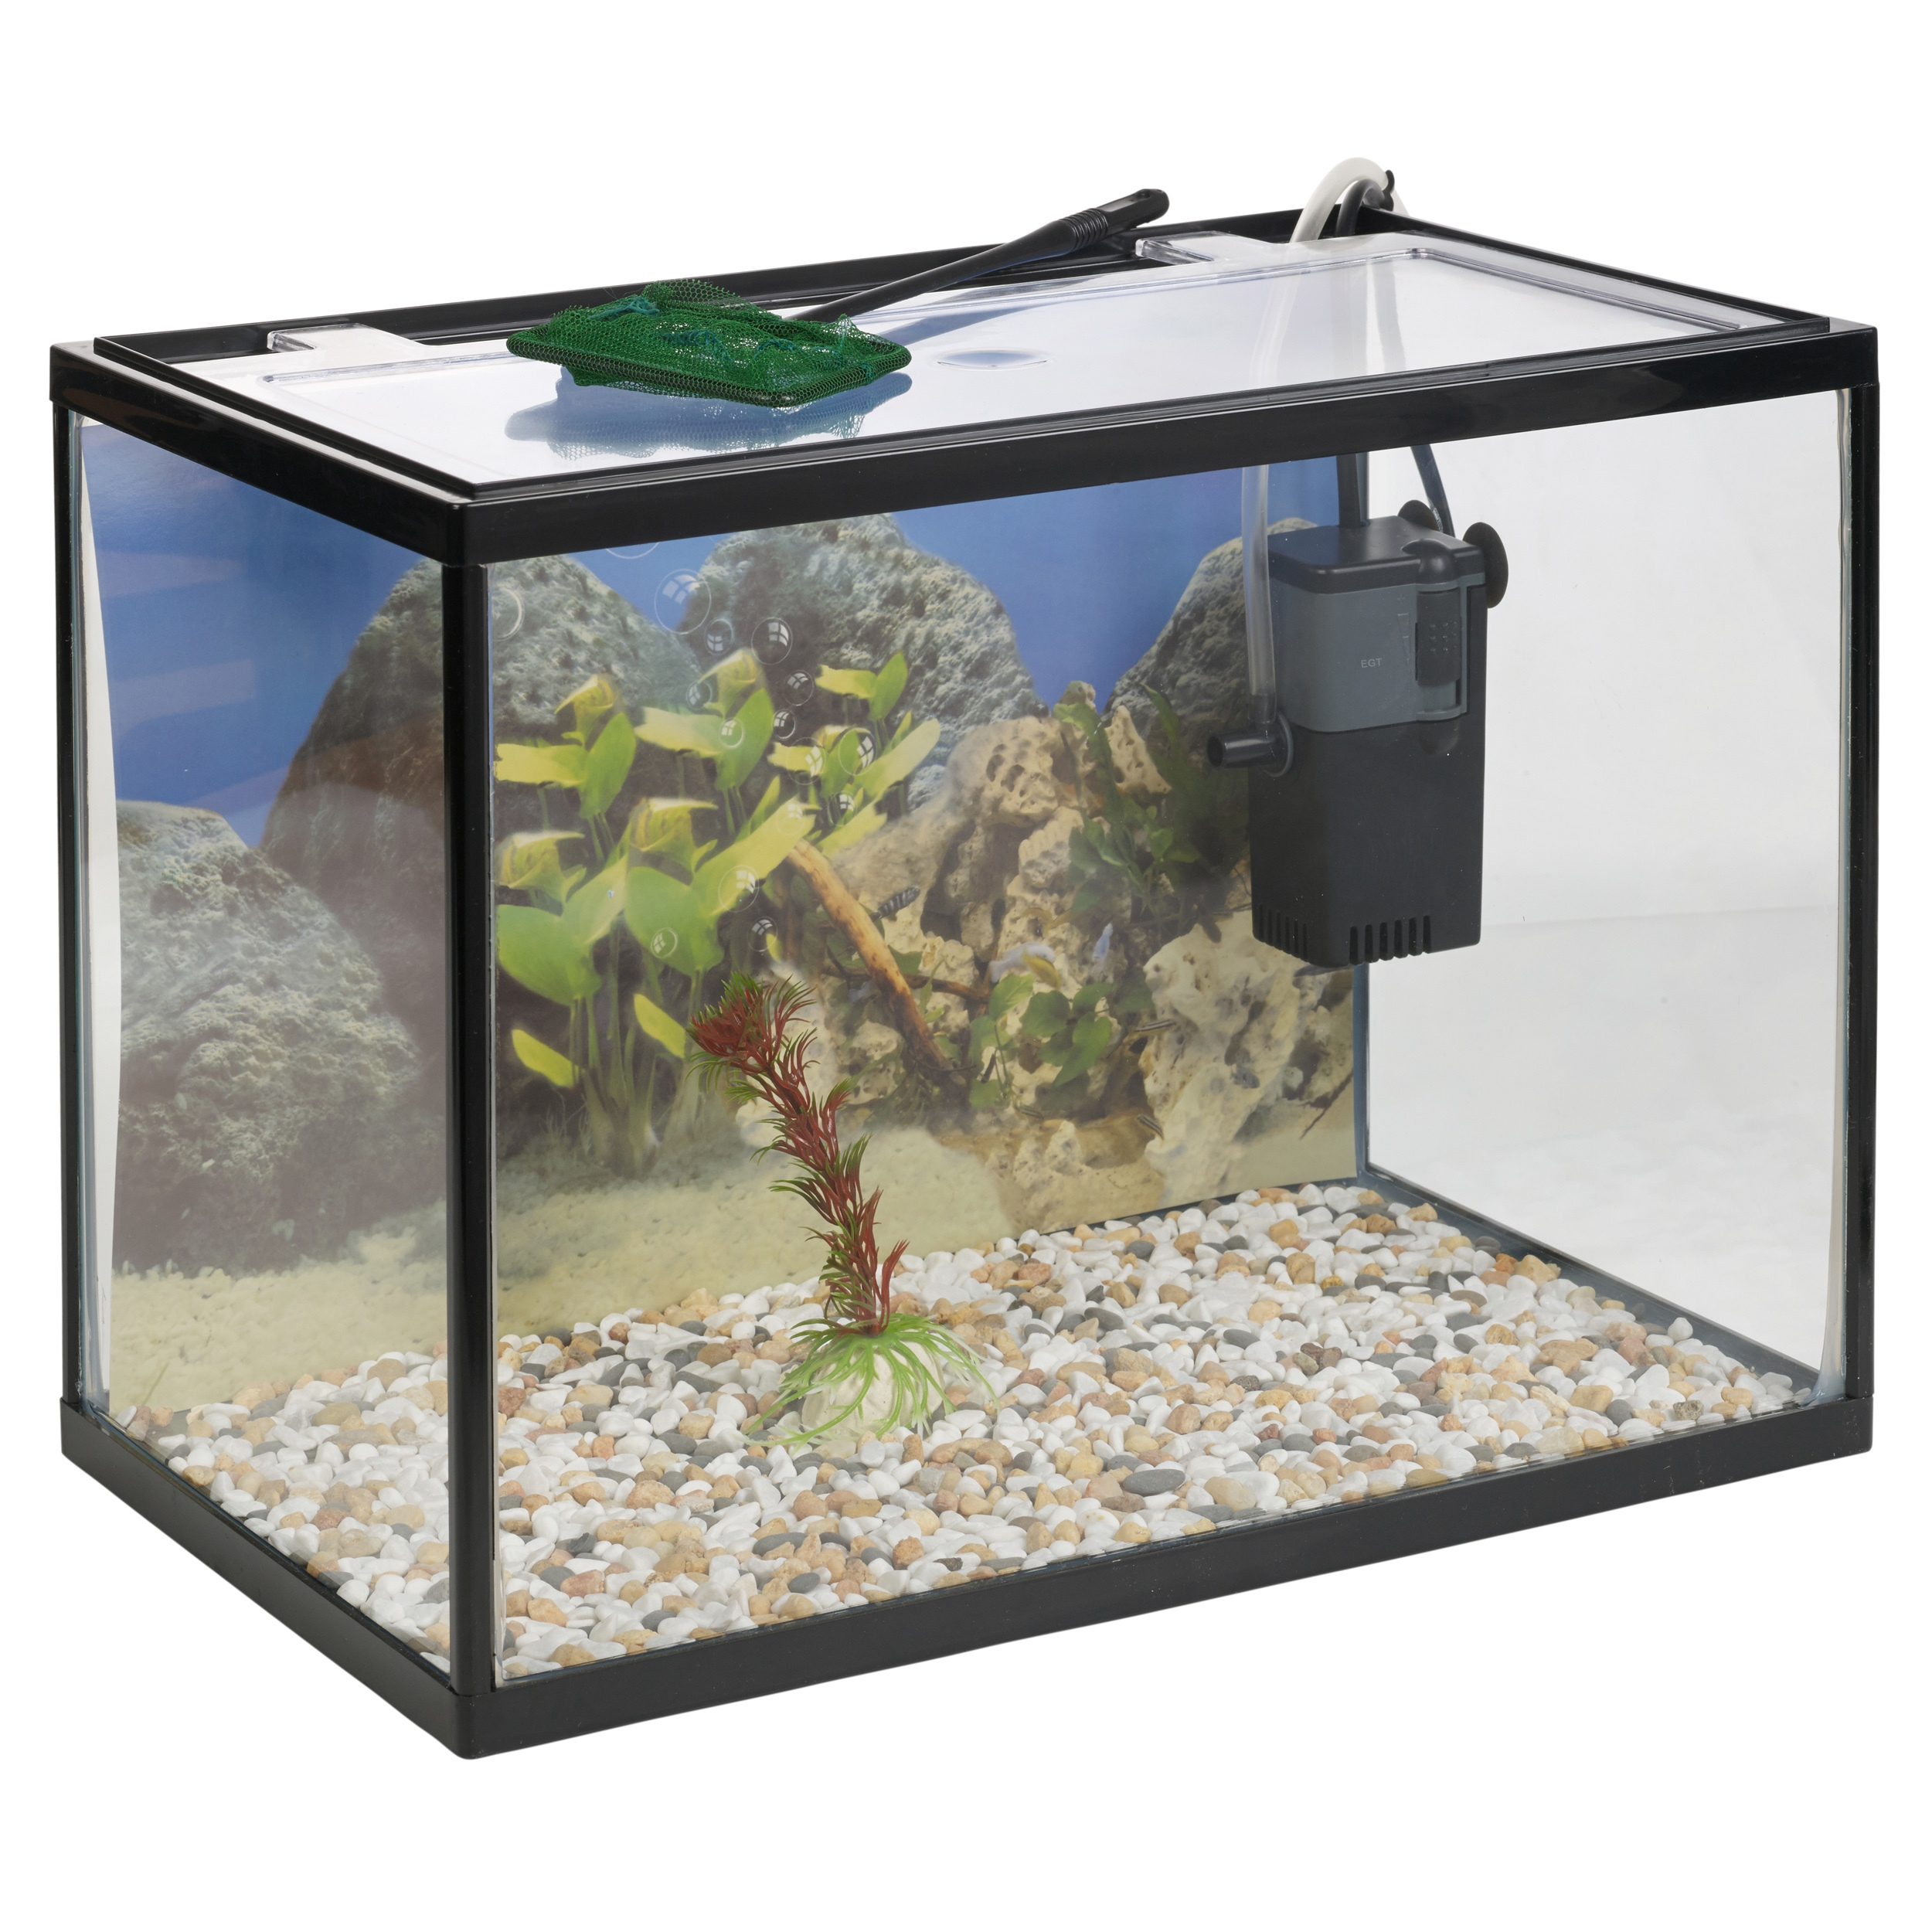 18 litre glass aquarium fish tank starter set with filter pump net plant stones ebay. Black Bedroom Furniture Sets. Home Design Ideas